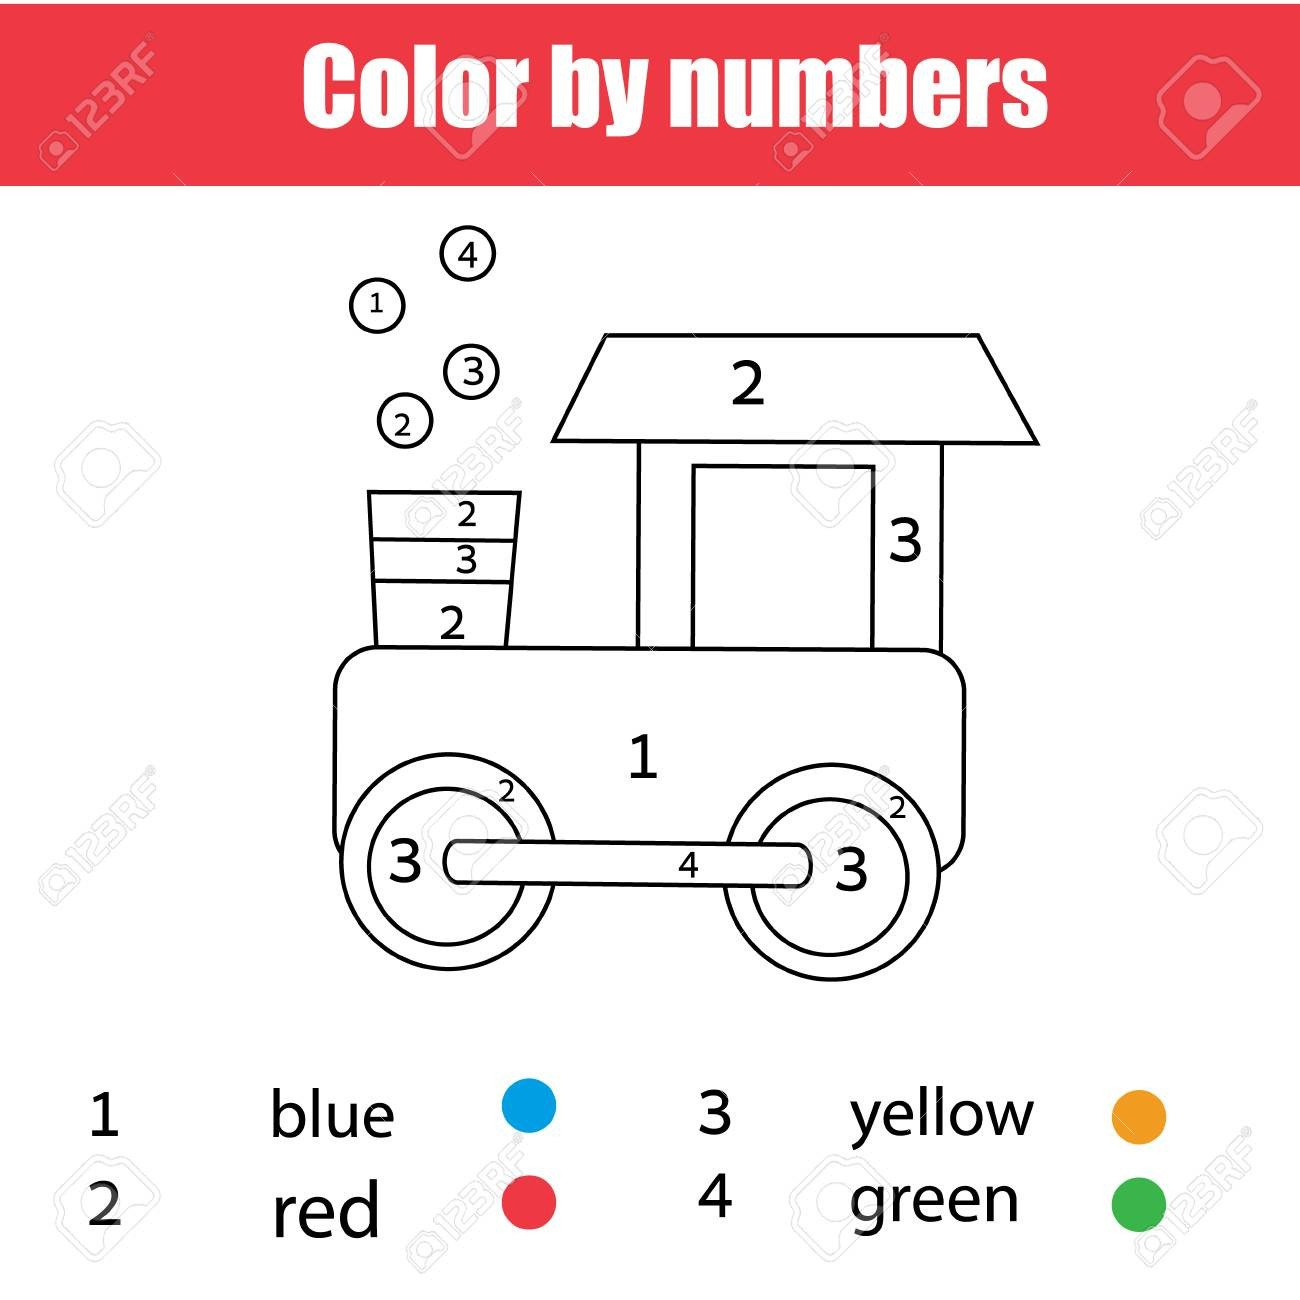 Color Red Worksheets for toddlers Coloring Page with toy Train Color by Numbers Printable Worksheet